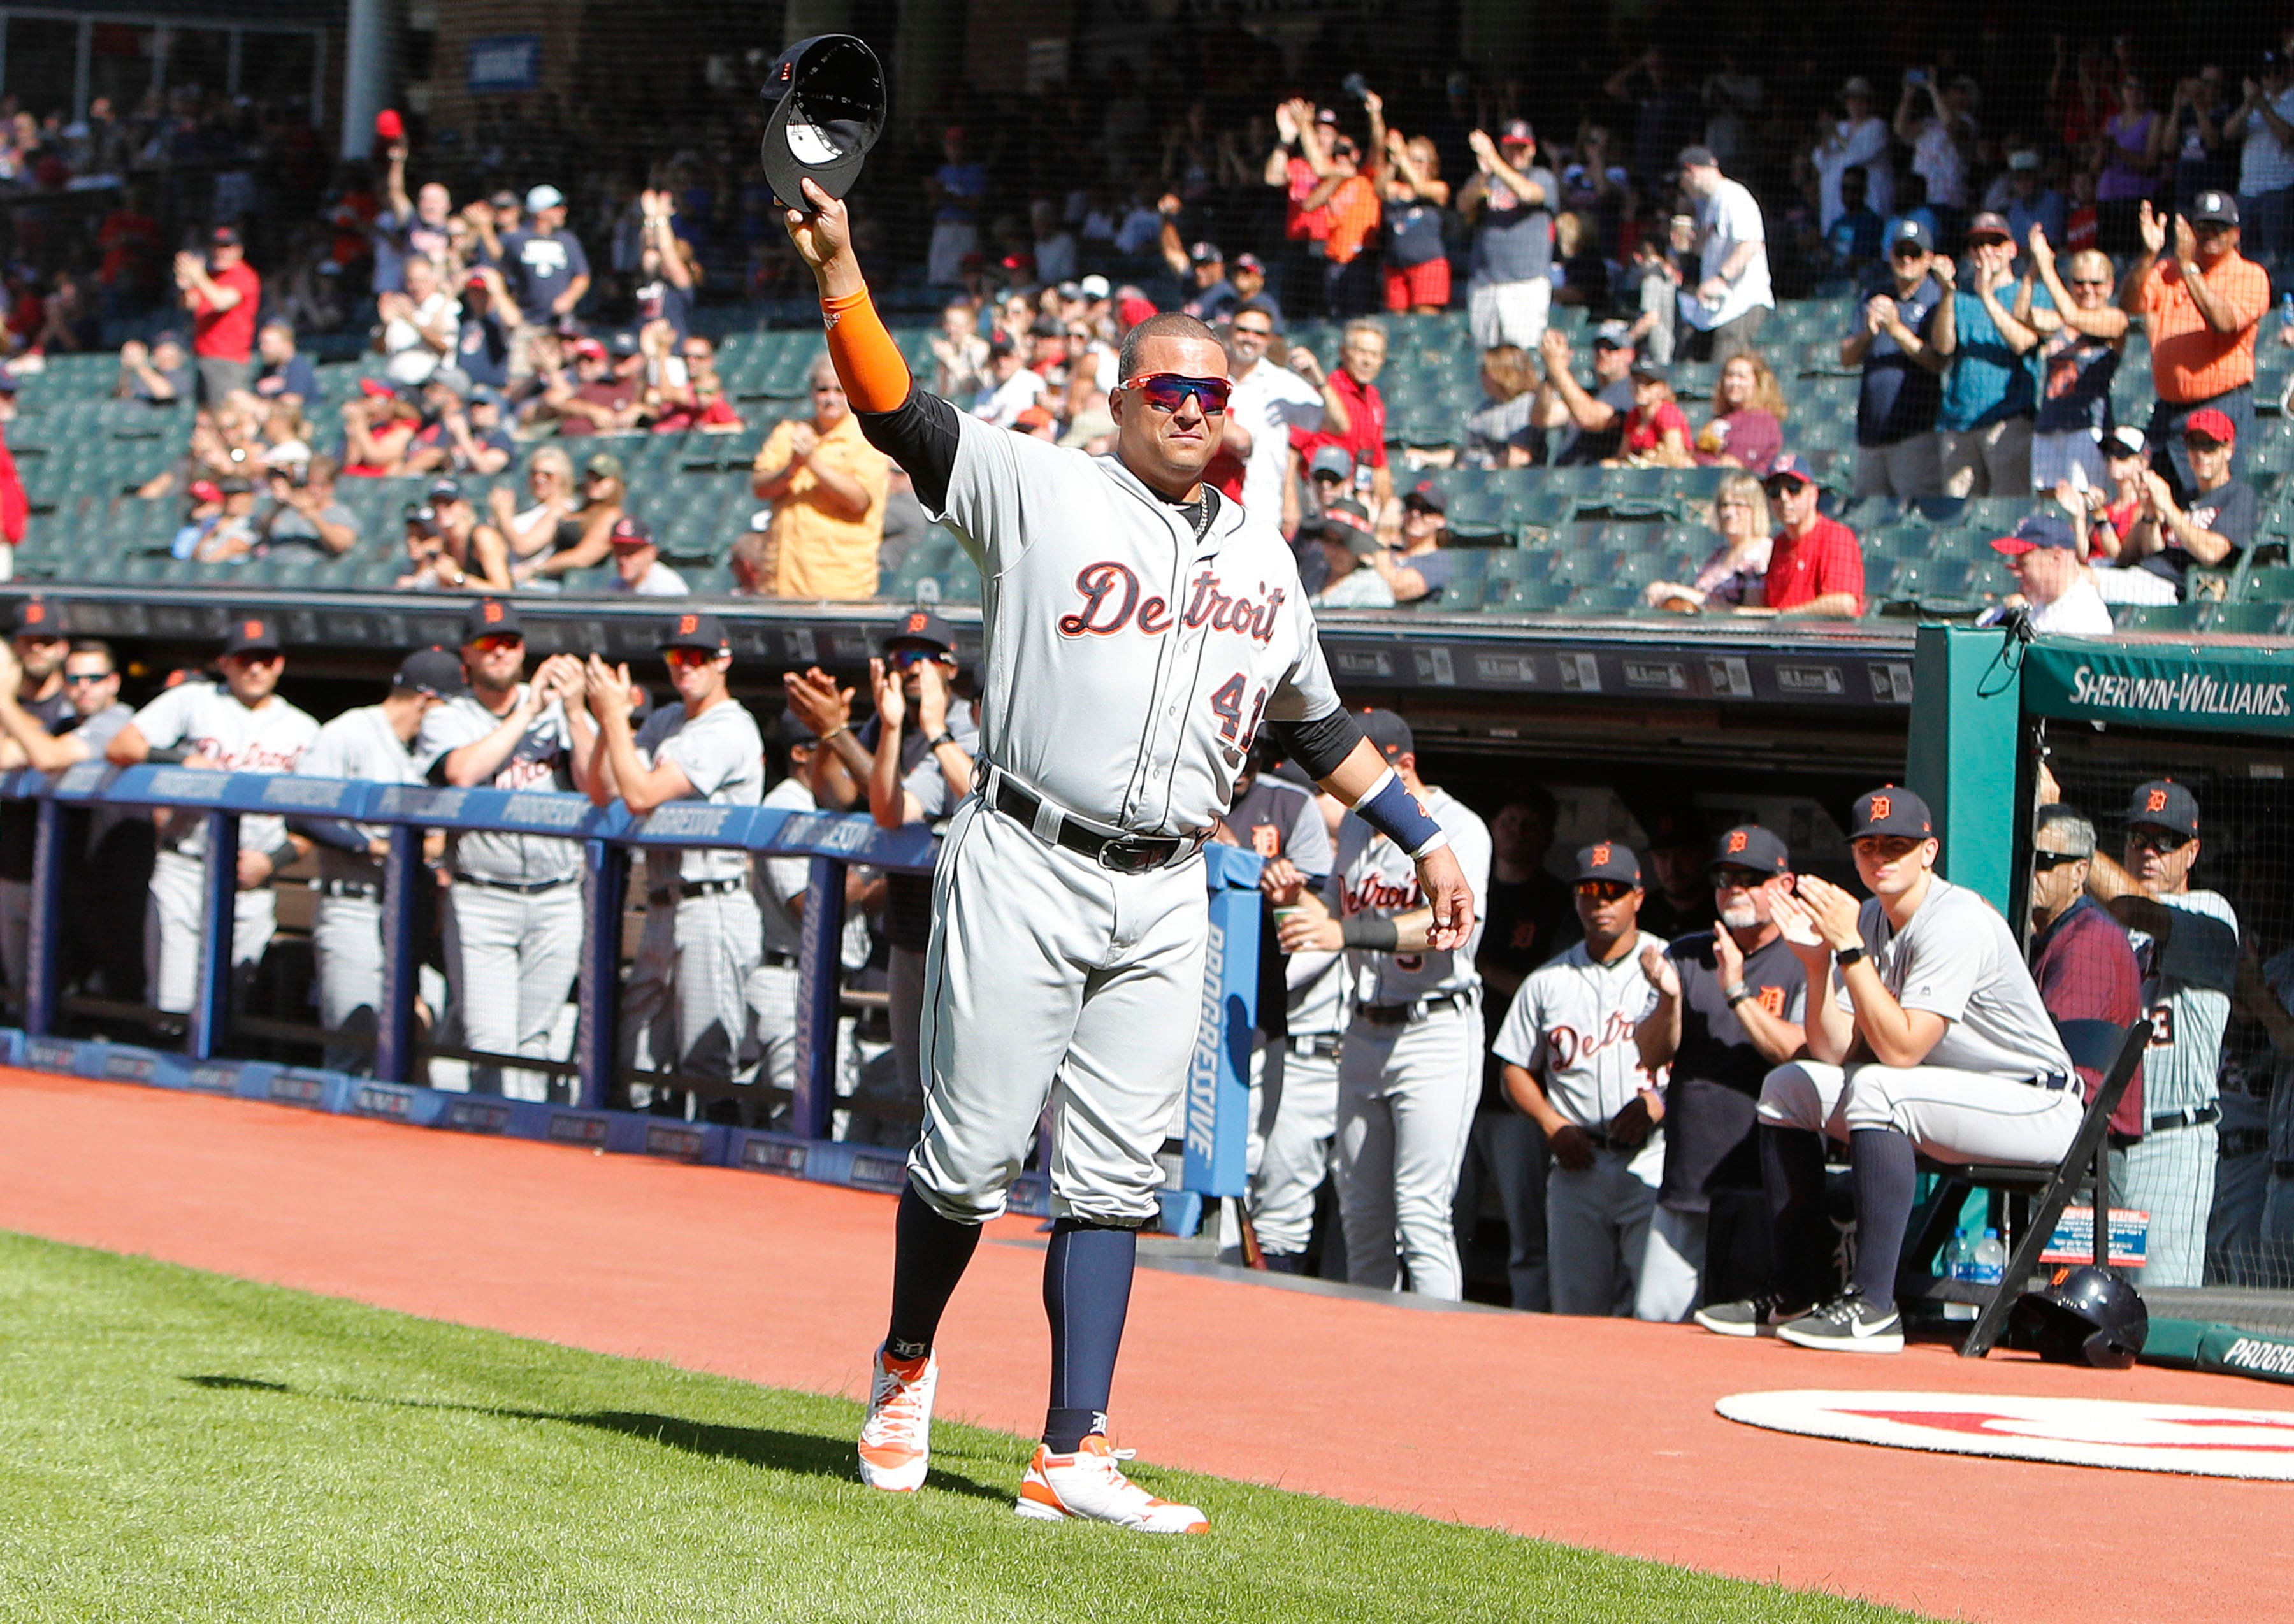 Tigers designated hitter Victor Martinez waves to the Indians crowd after receiving a plaque honoring his announced retirement during a pre-game ceremony before the start of the Tigers' 15-0 loss on Saturday, Sept. 15, 2018, in Cleveland.